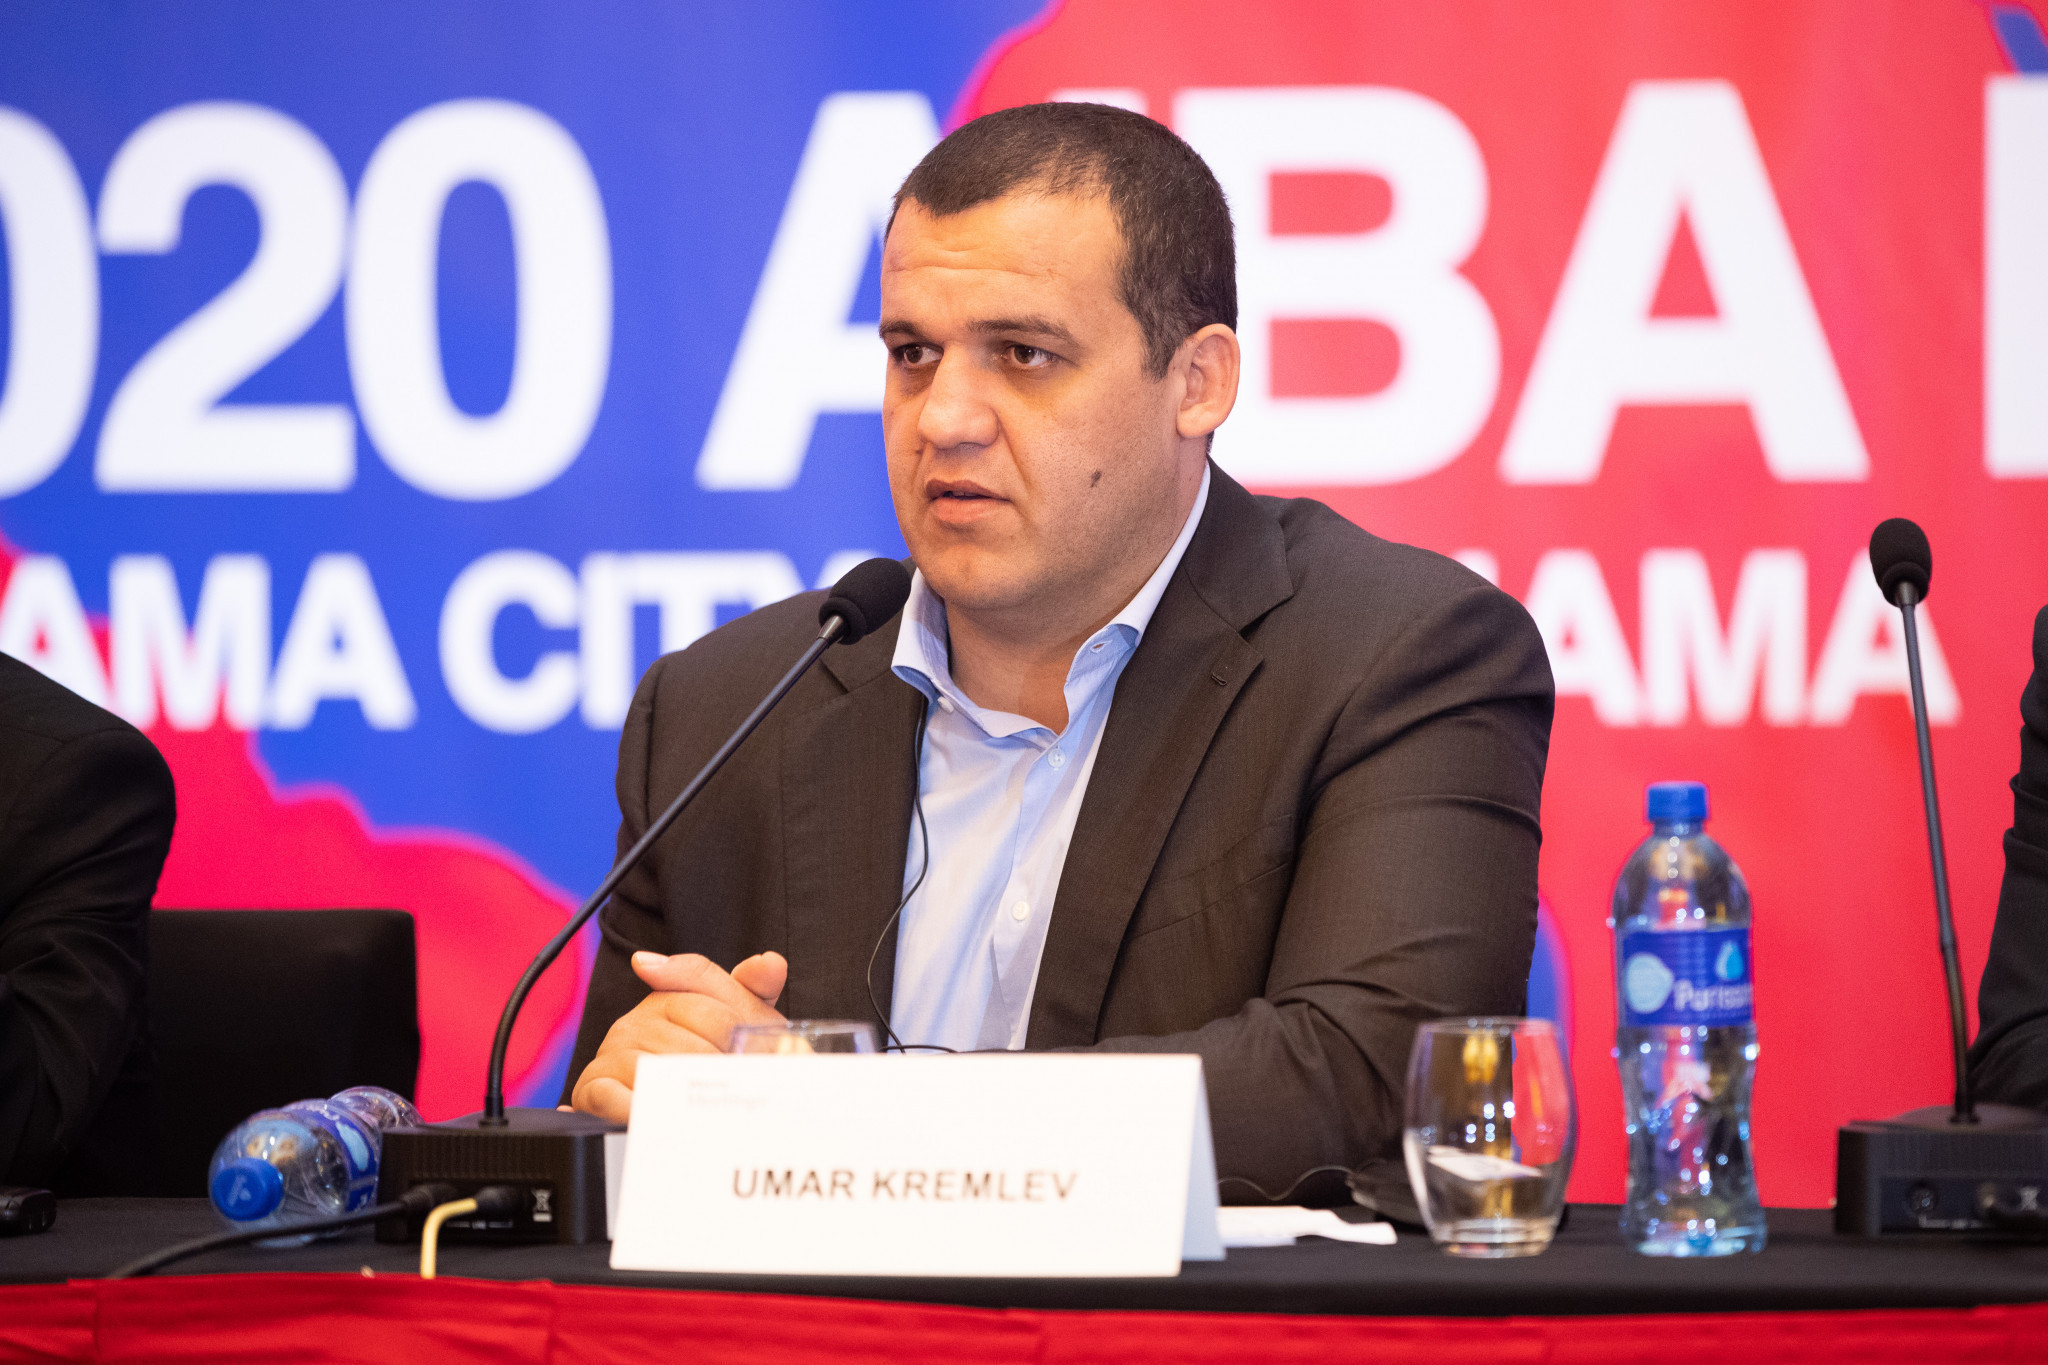 Umar Kremlev was one of five candidates on the ballot for the AIBA Presidency ©AIBA